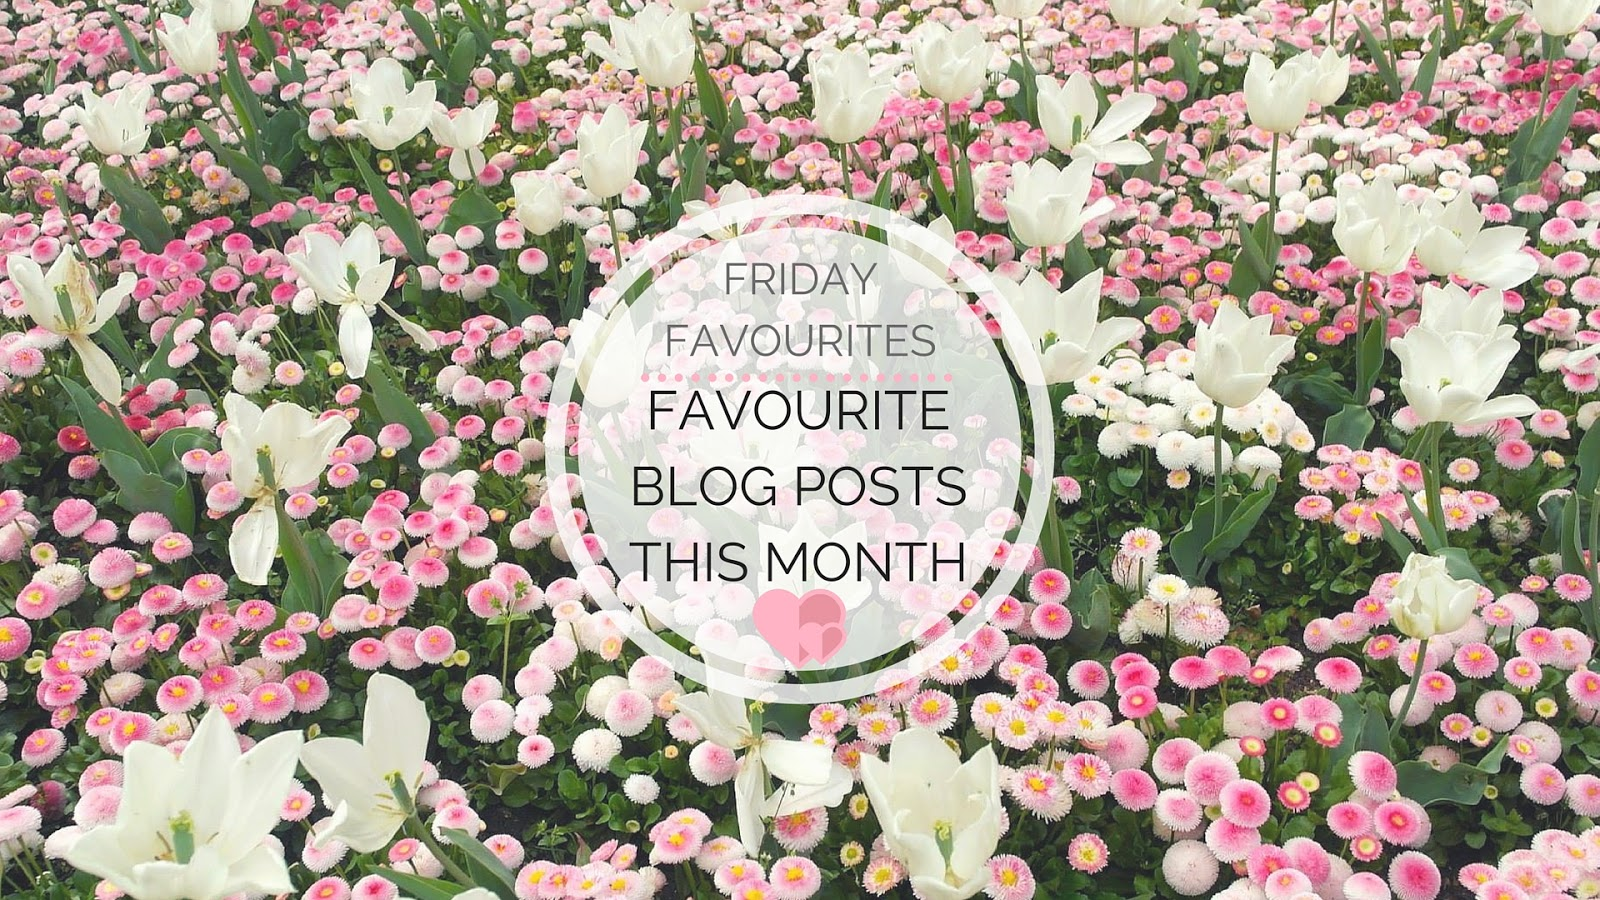 My Favourite Blog Posts This Month